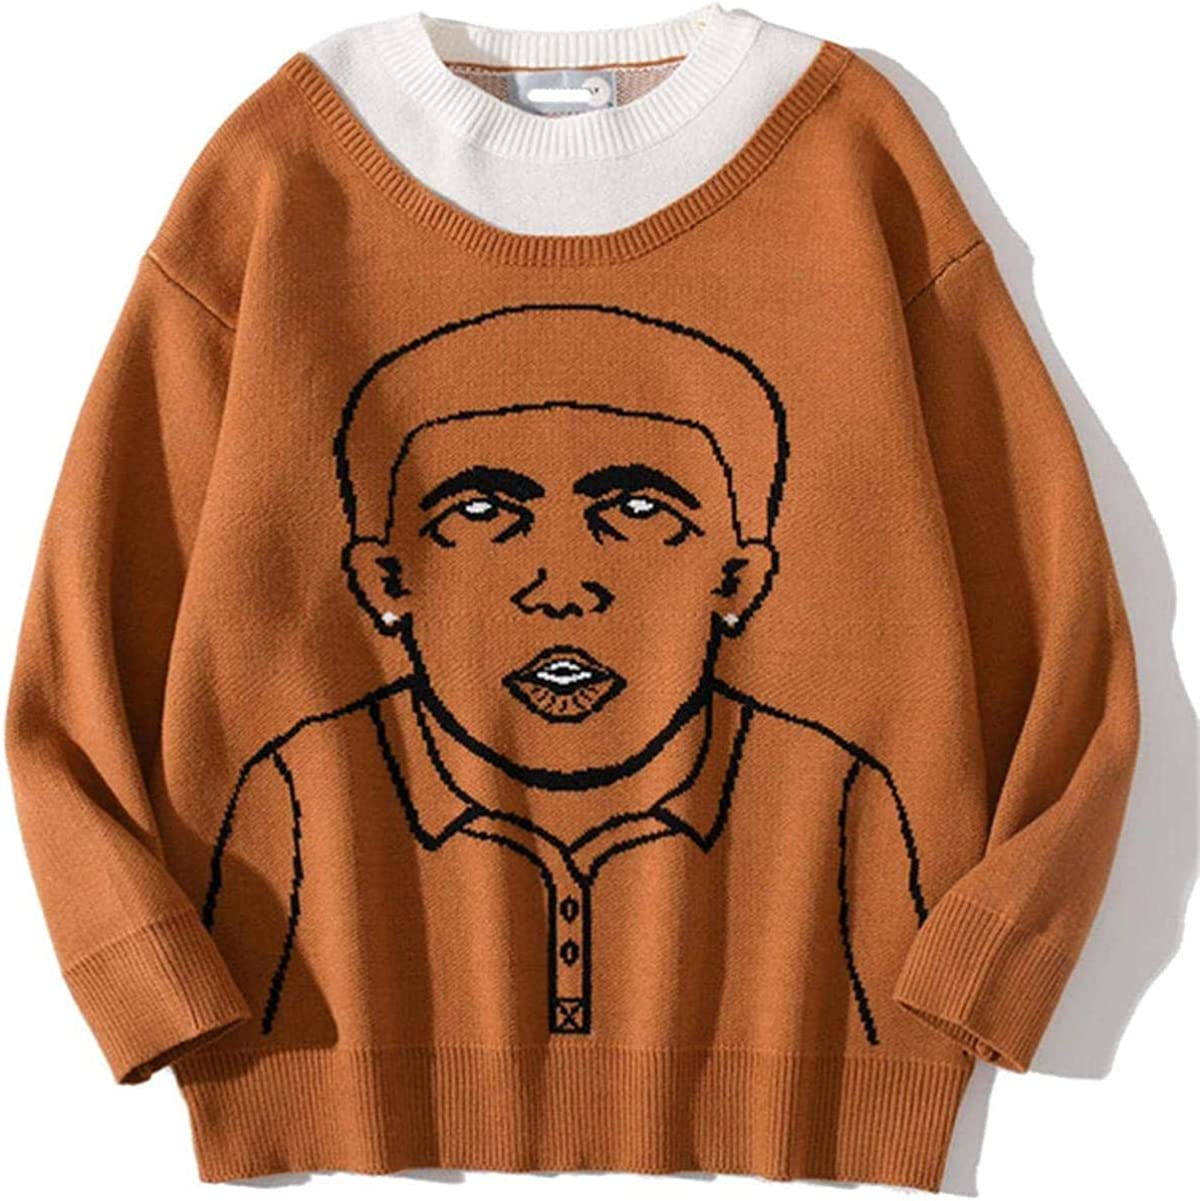 Men's Sweaters Funny Human Character Print Pullover Knitwear Sweater Casual Sweater Streetwear Tops